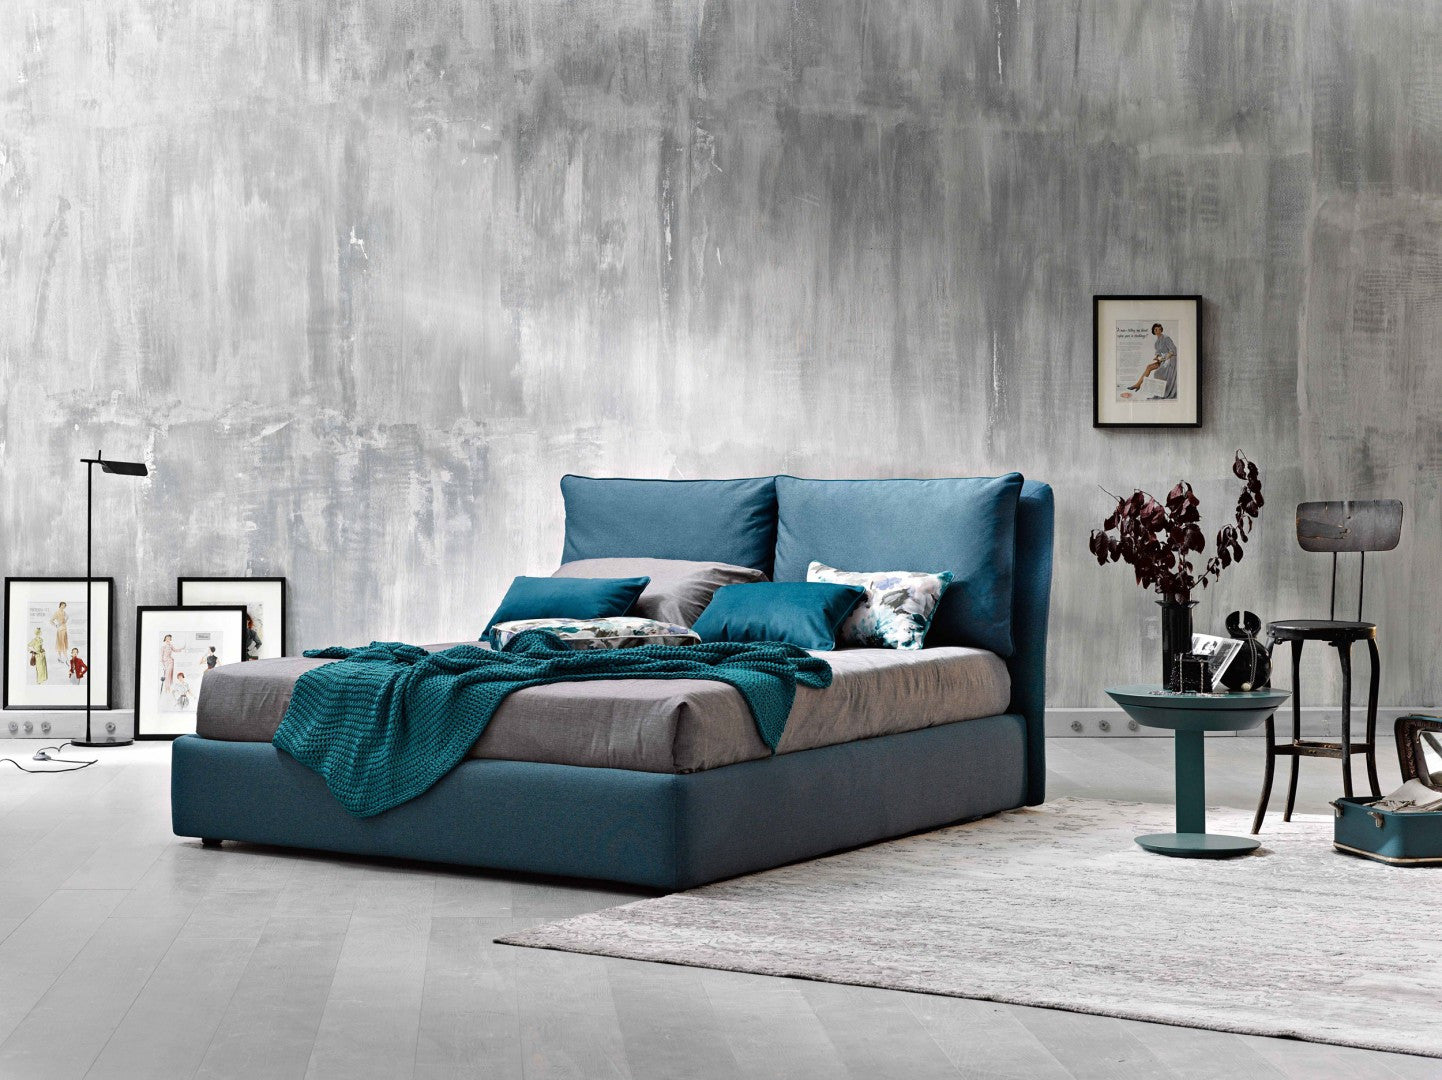 Fris Bed - Design in Italy